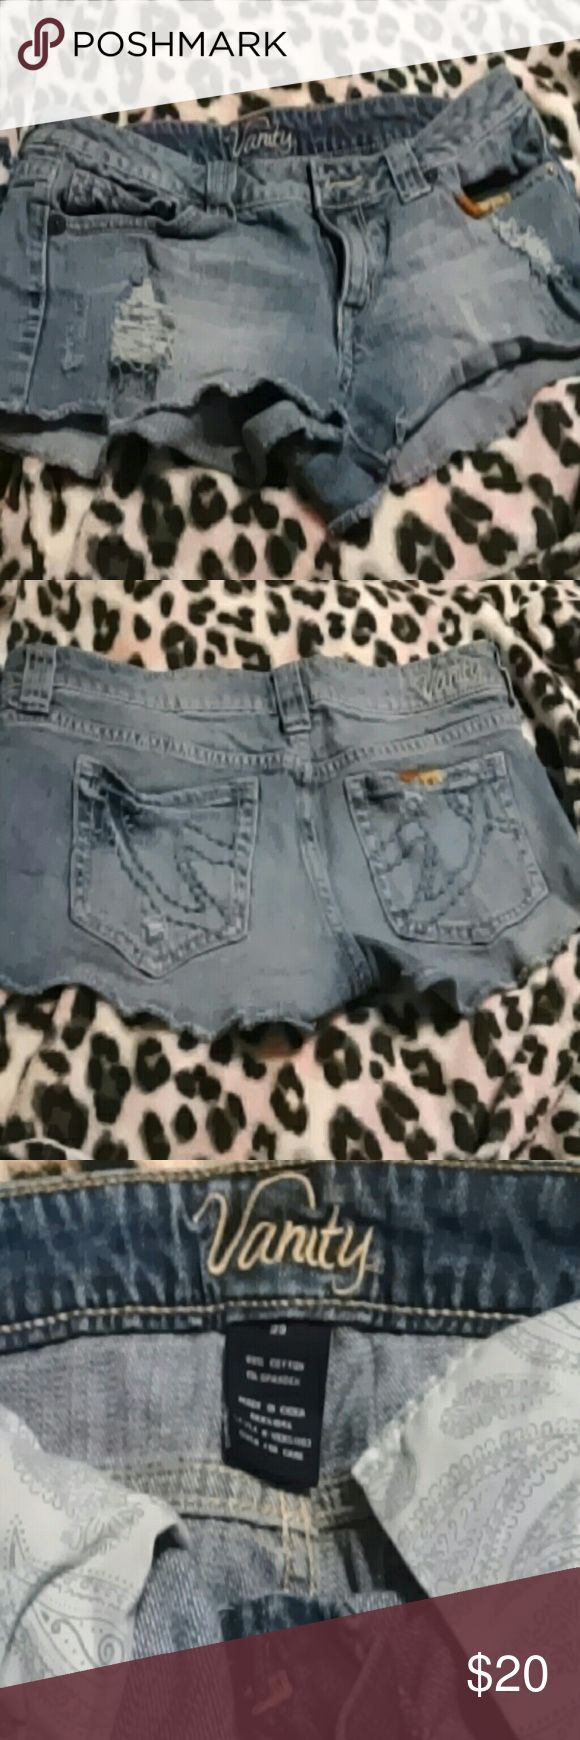 Vanity shorts Cute distressed short(Daisy Duke) shorts with thread  color details Vanity Shorts Jean Shorts